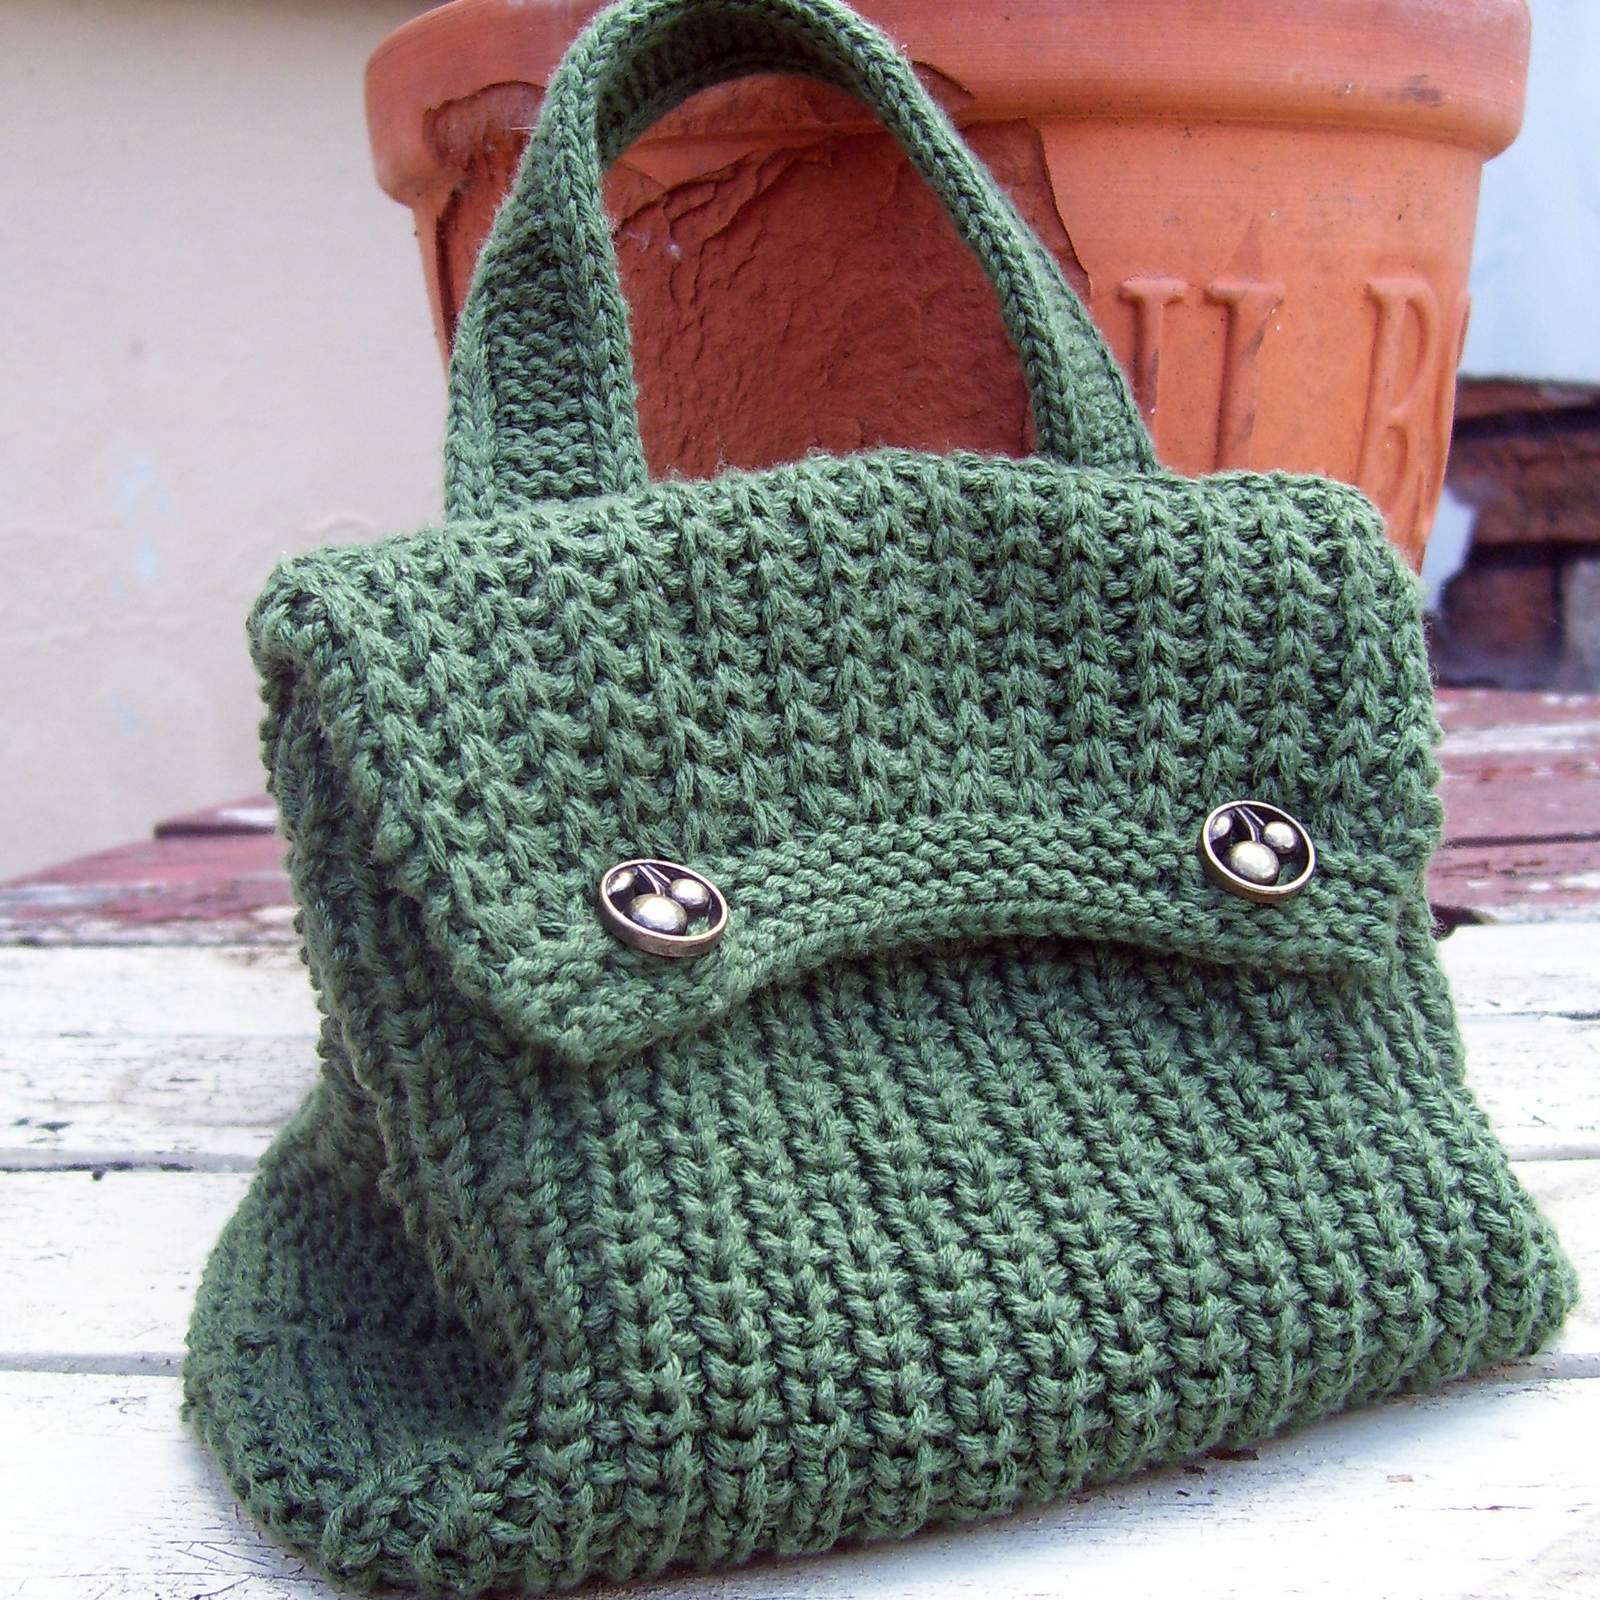 Free Crochet Patterns For Tote Bags And Purses : FREE CROCHET PATTERNS FOR PURSES Crochet Tutorials